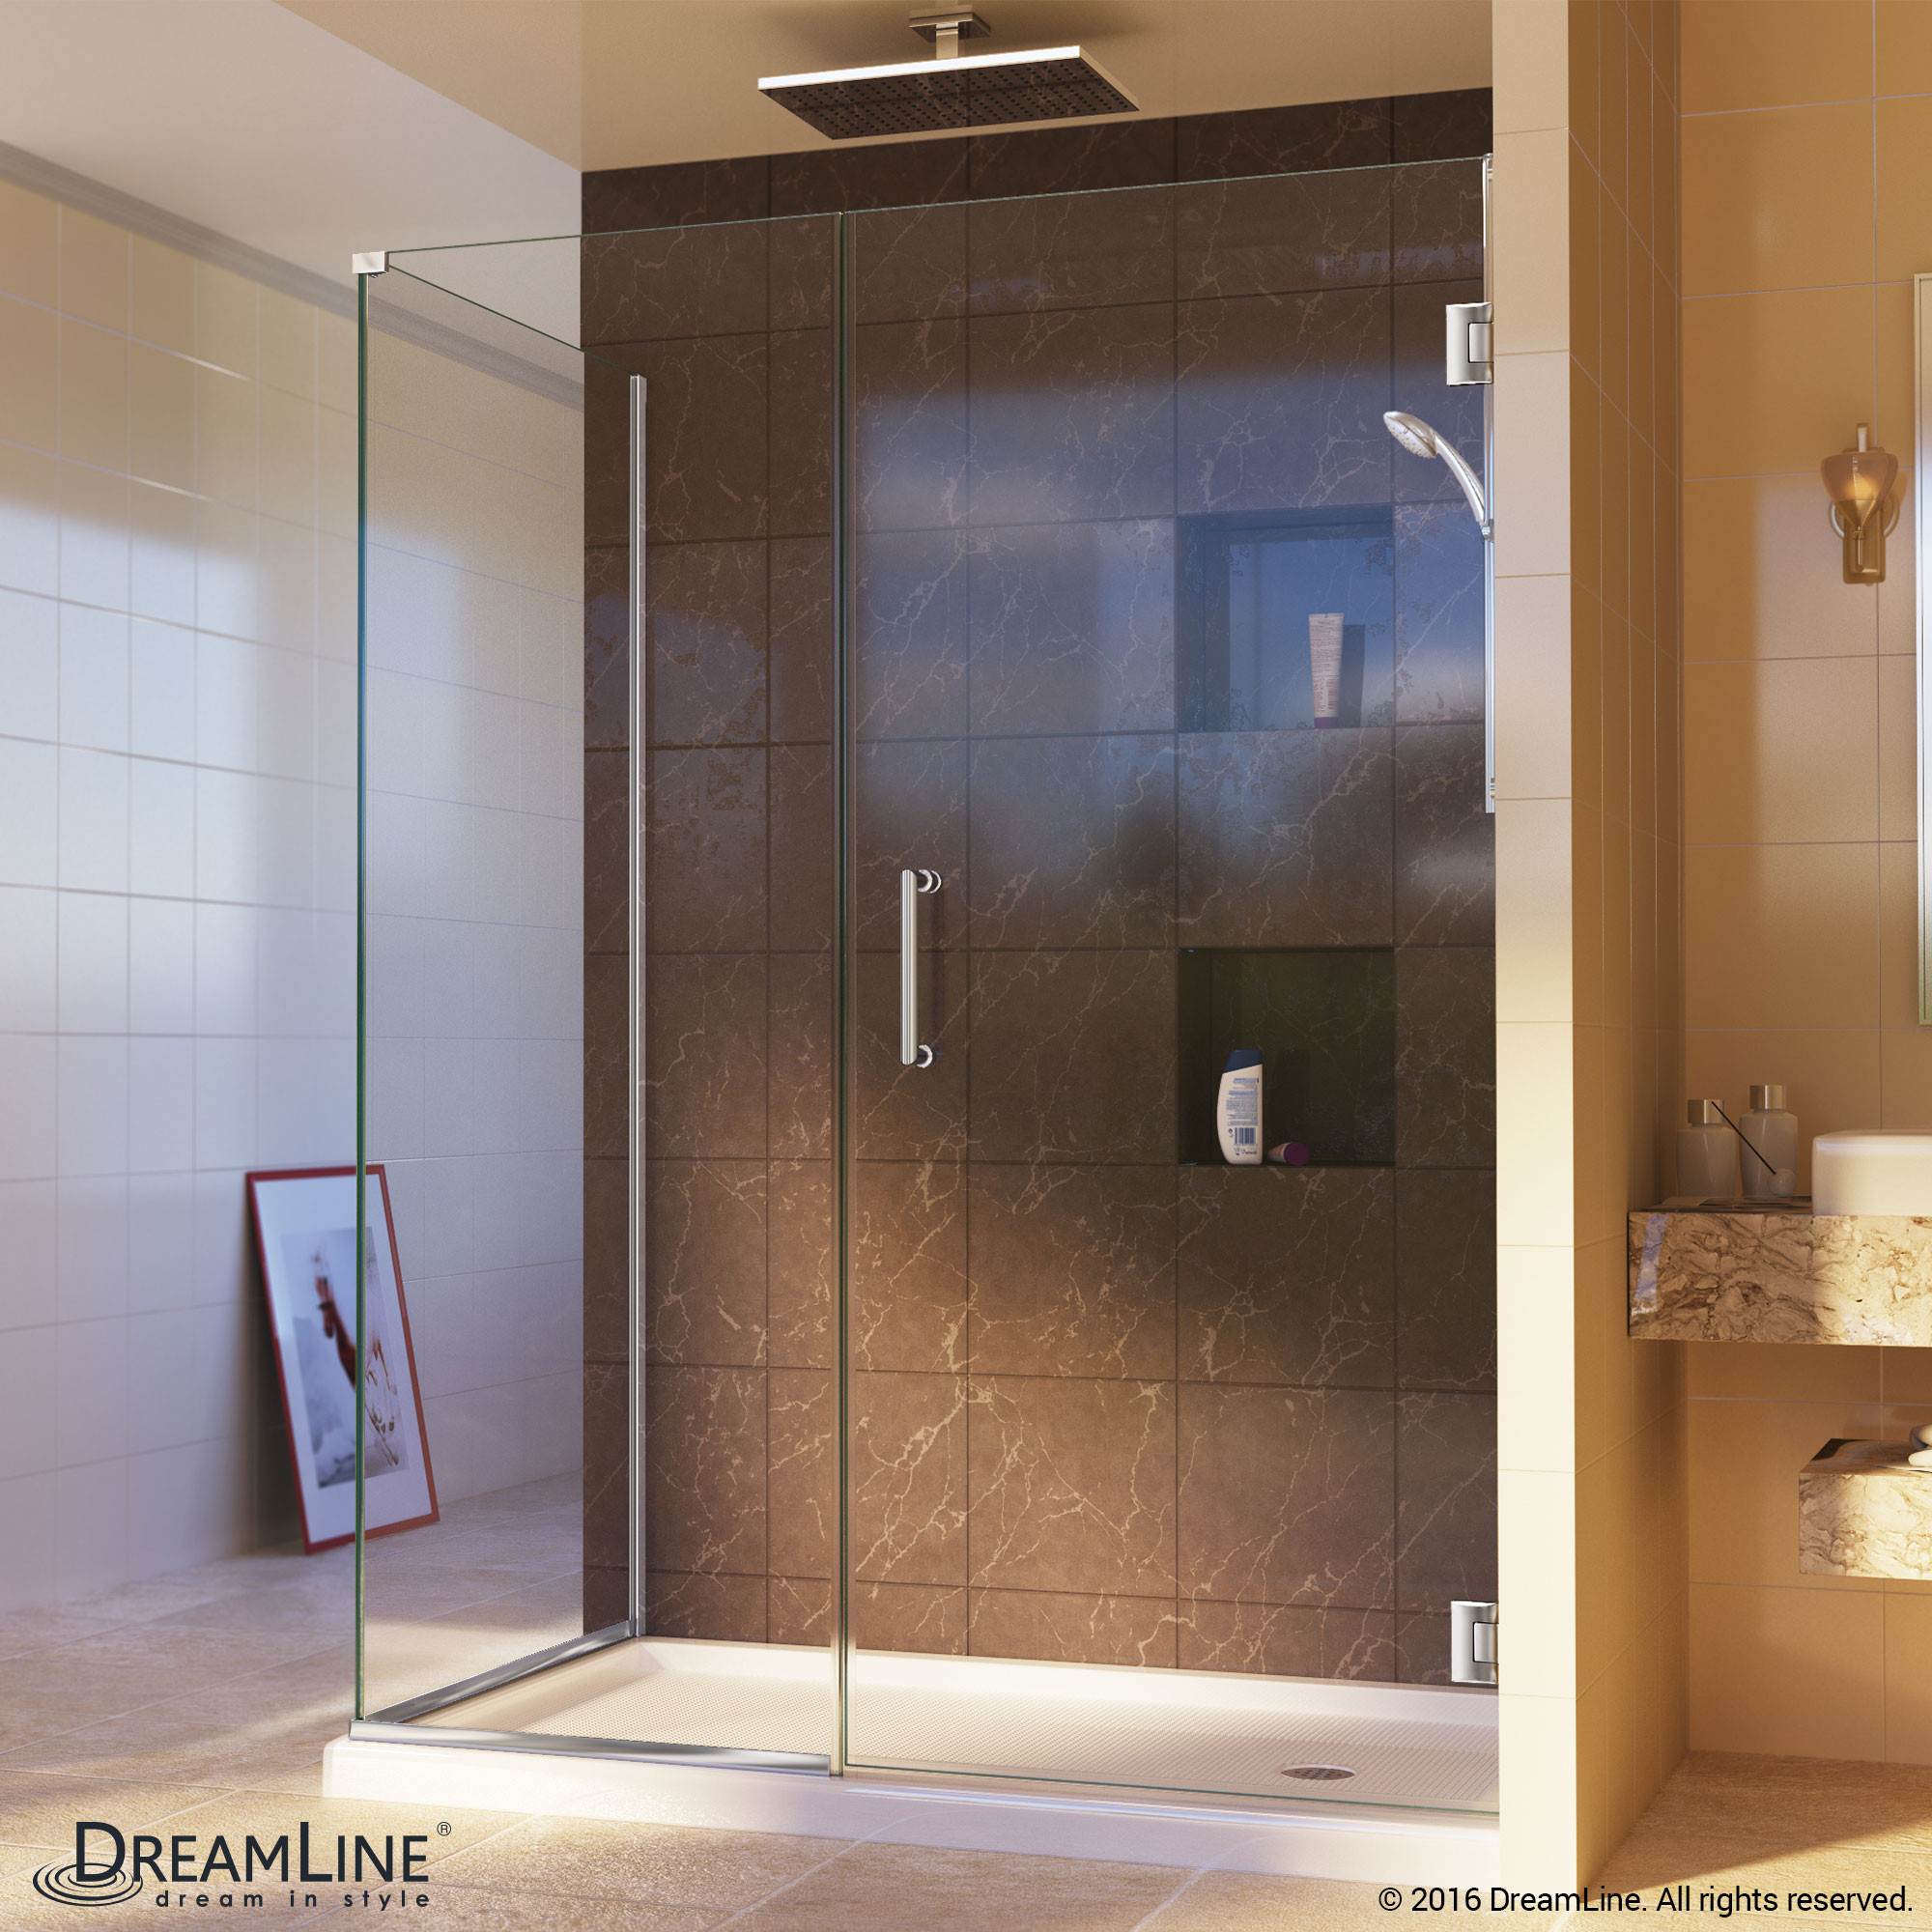 DreamLine SHEN-24450340-01 Unidoor Plus Hinged Shower Enclosure In Chrome Finish Hardware